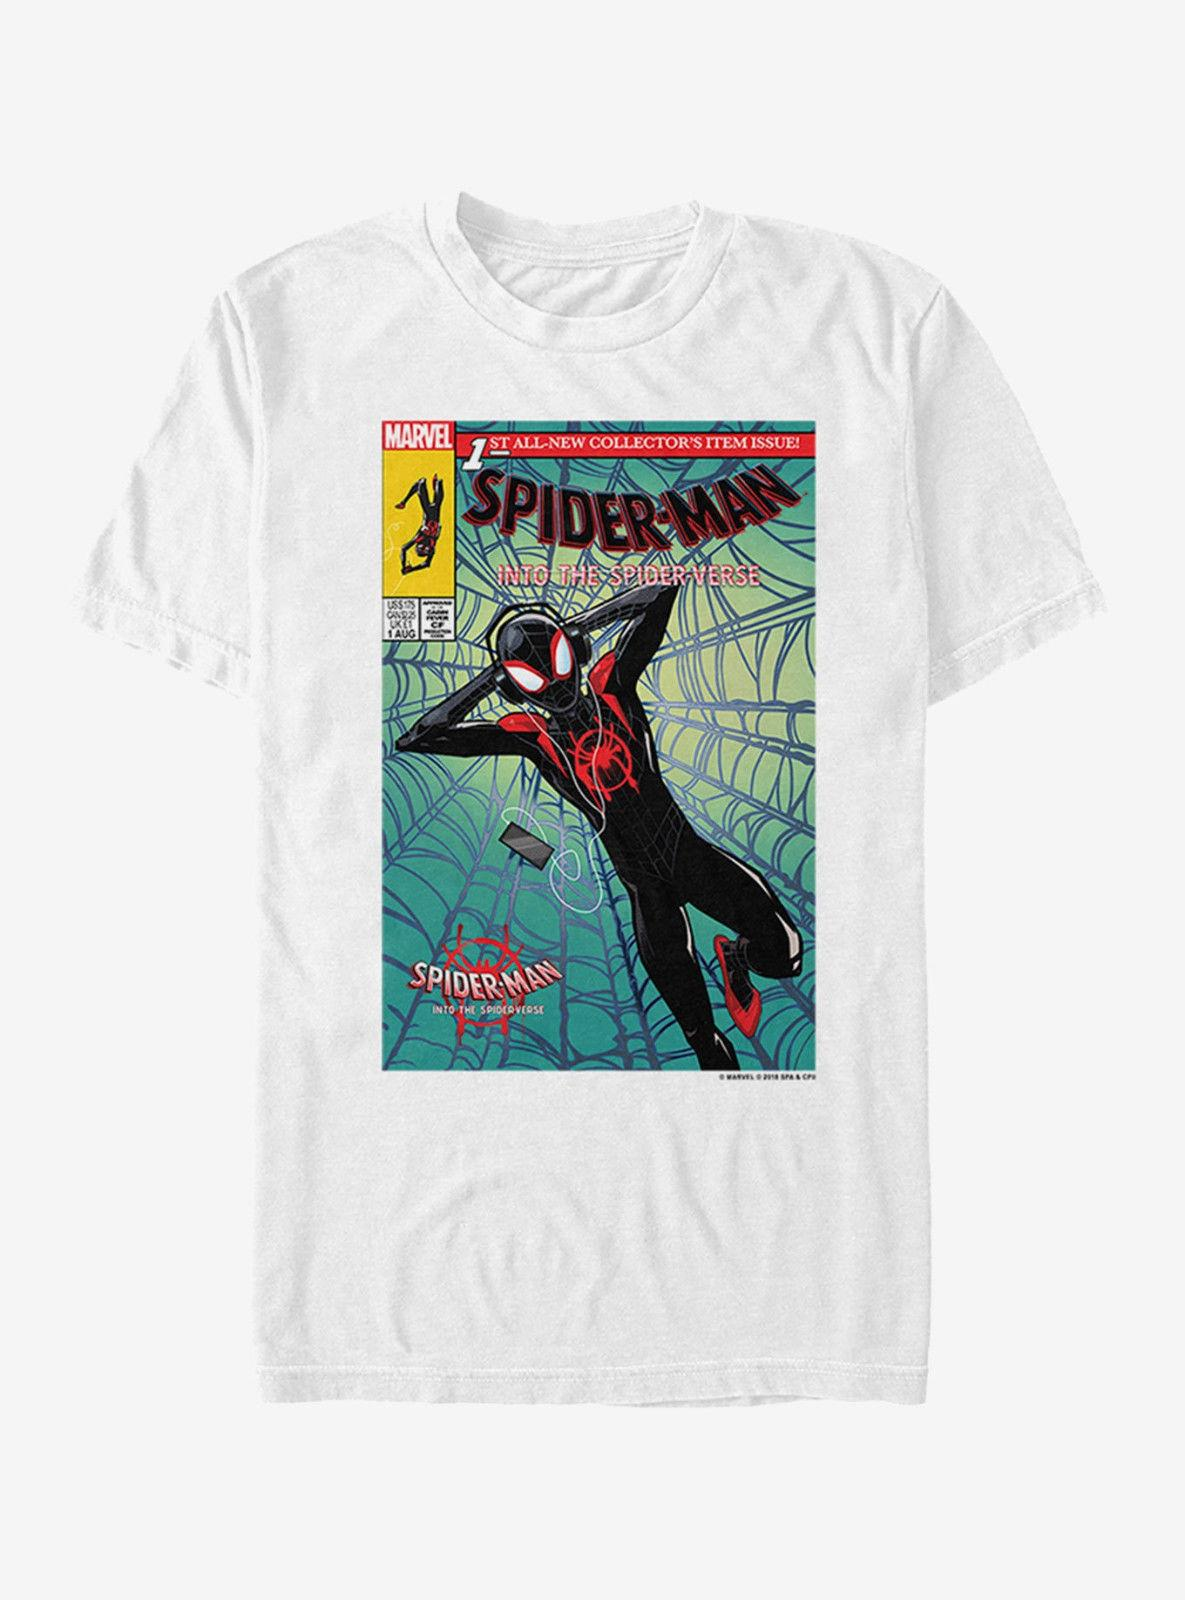 69c9f44087d92 Marvel Spider Man: Into The Spider Verse Miles T Shirt Size US Large Pre  Order Men Women Unisex Fashion Tshirt T Shirts For Sale Printed T Shirt  From ...